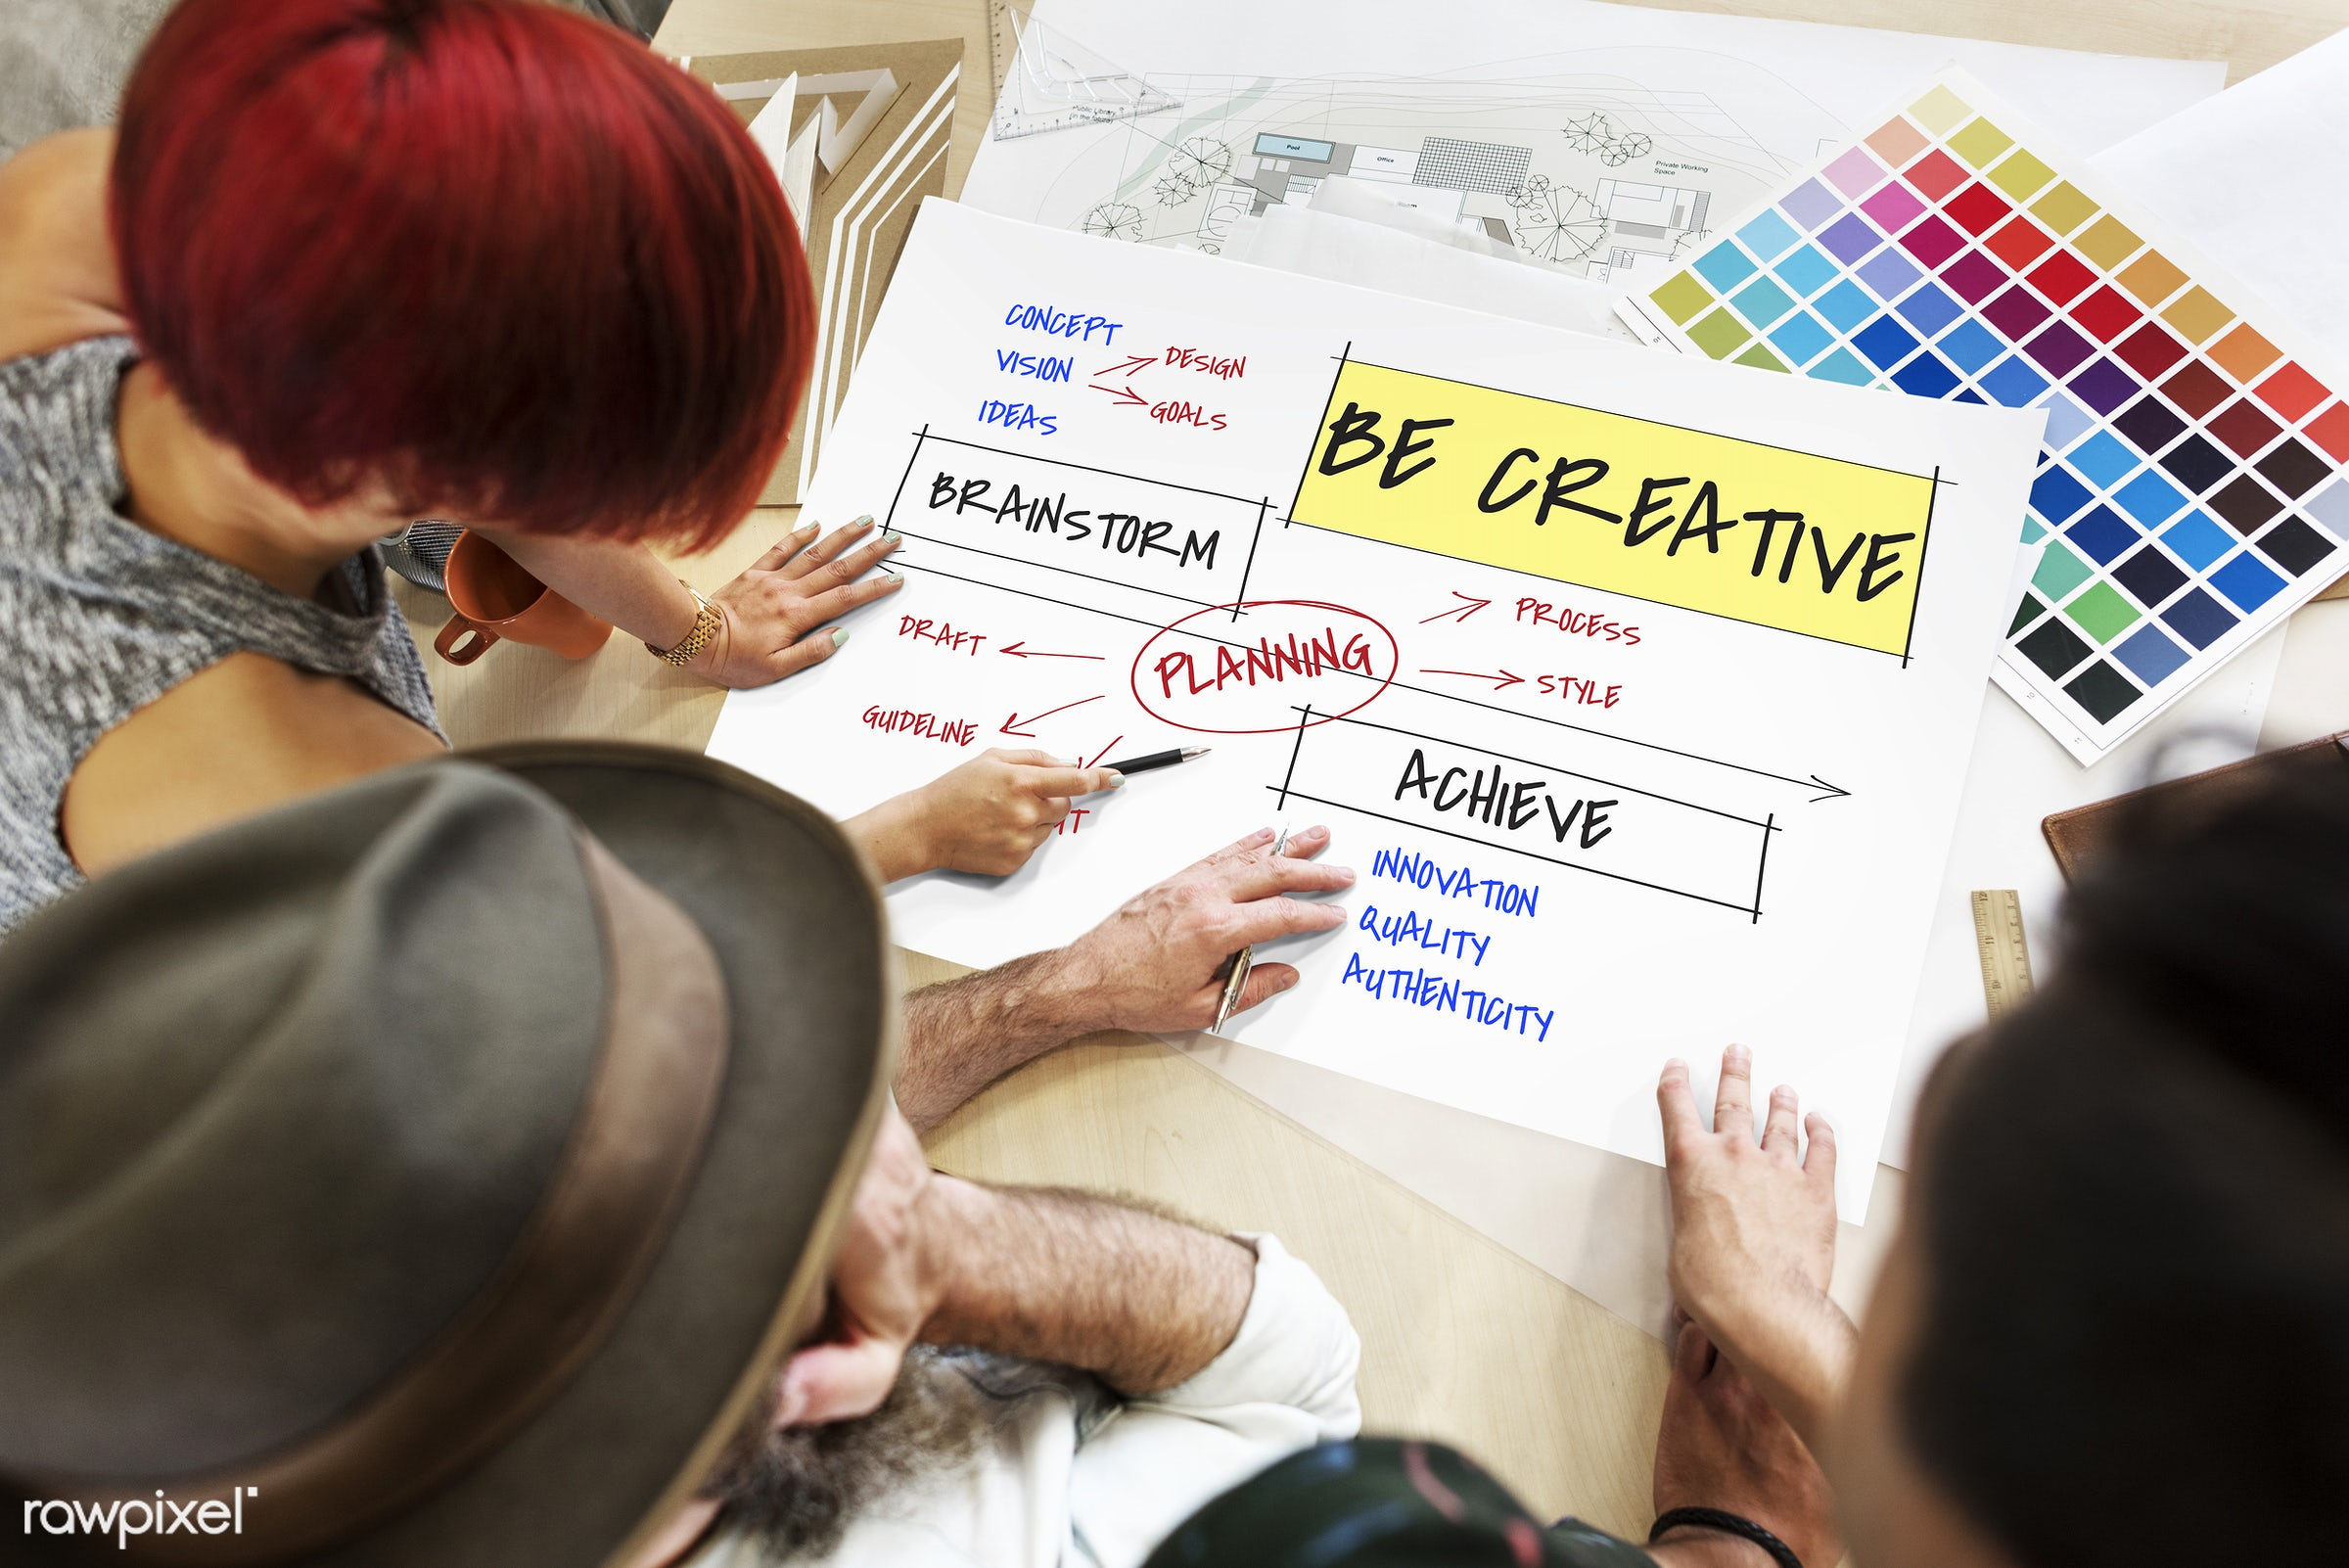 achieve, art, authenticity, be creative, brainstorm, chart, color chart, colors, creative, creativity, design, diagram,...